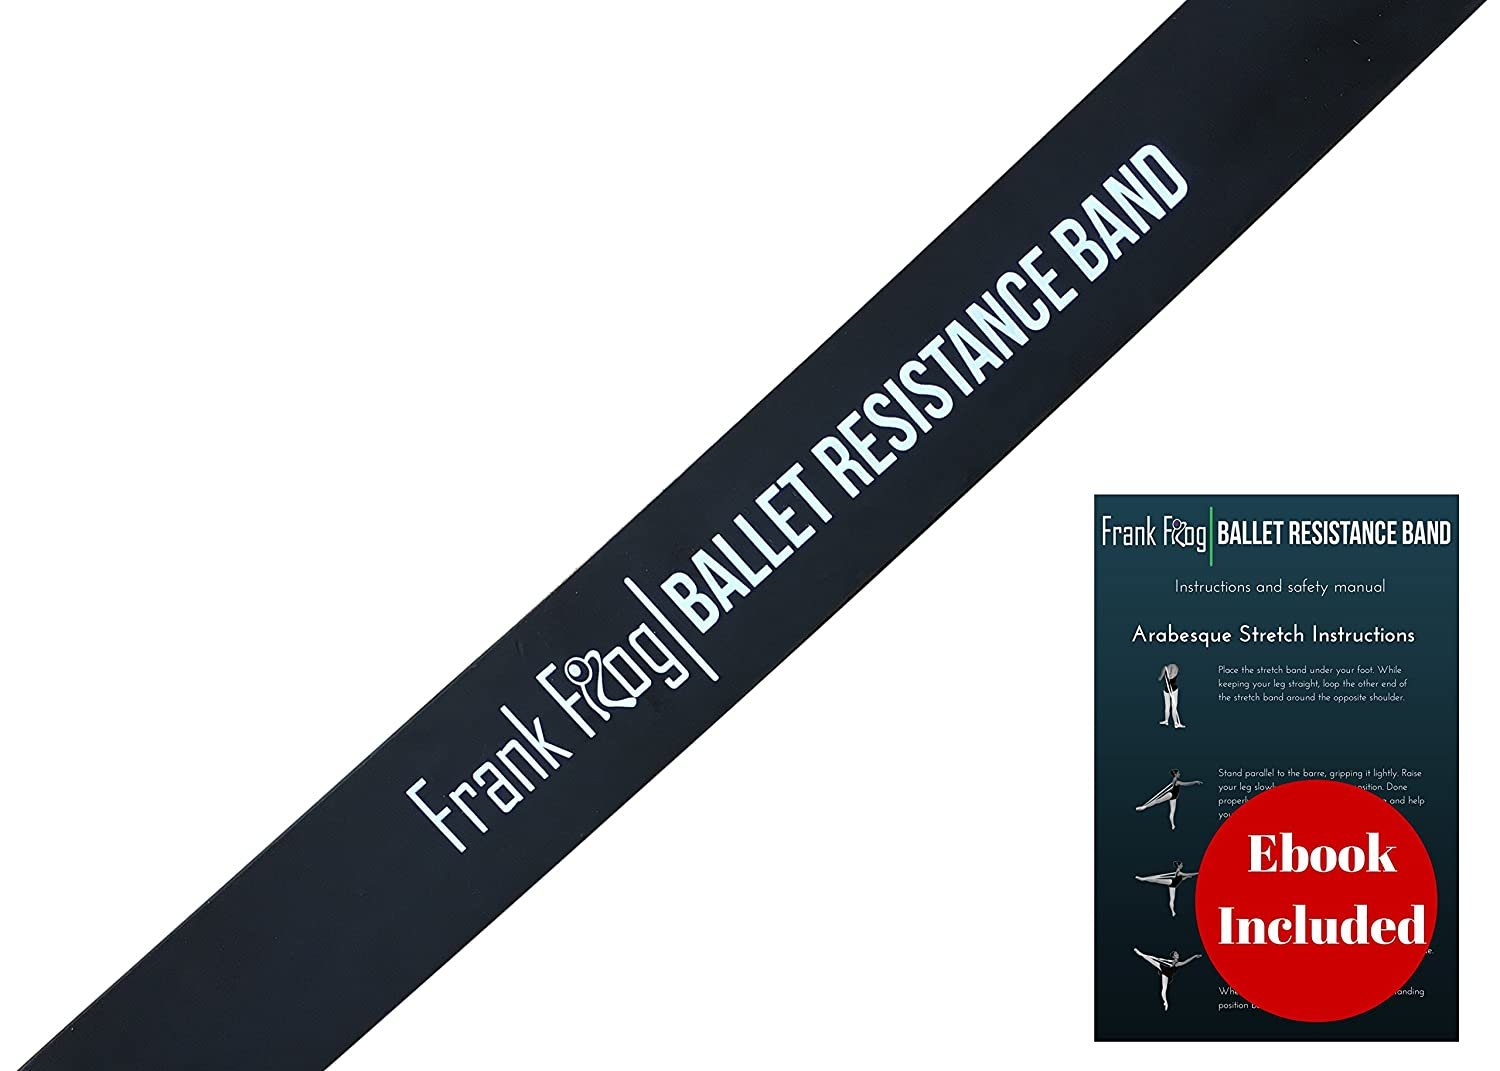 Ballet Stretch Band by Frank Frog /— Gymnastics Exercise Band /& Kinetic Band for Dance /— Latex Training Band for Injury Prevention /& Improved Stretching /— Great for Cheerleading Tumbling /& Martial Arts